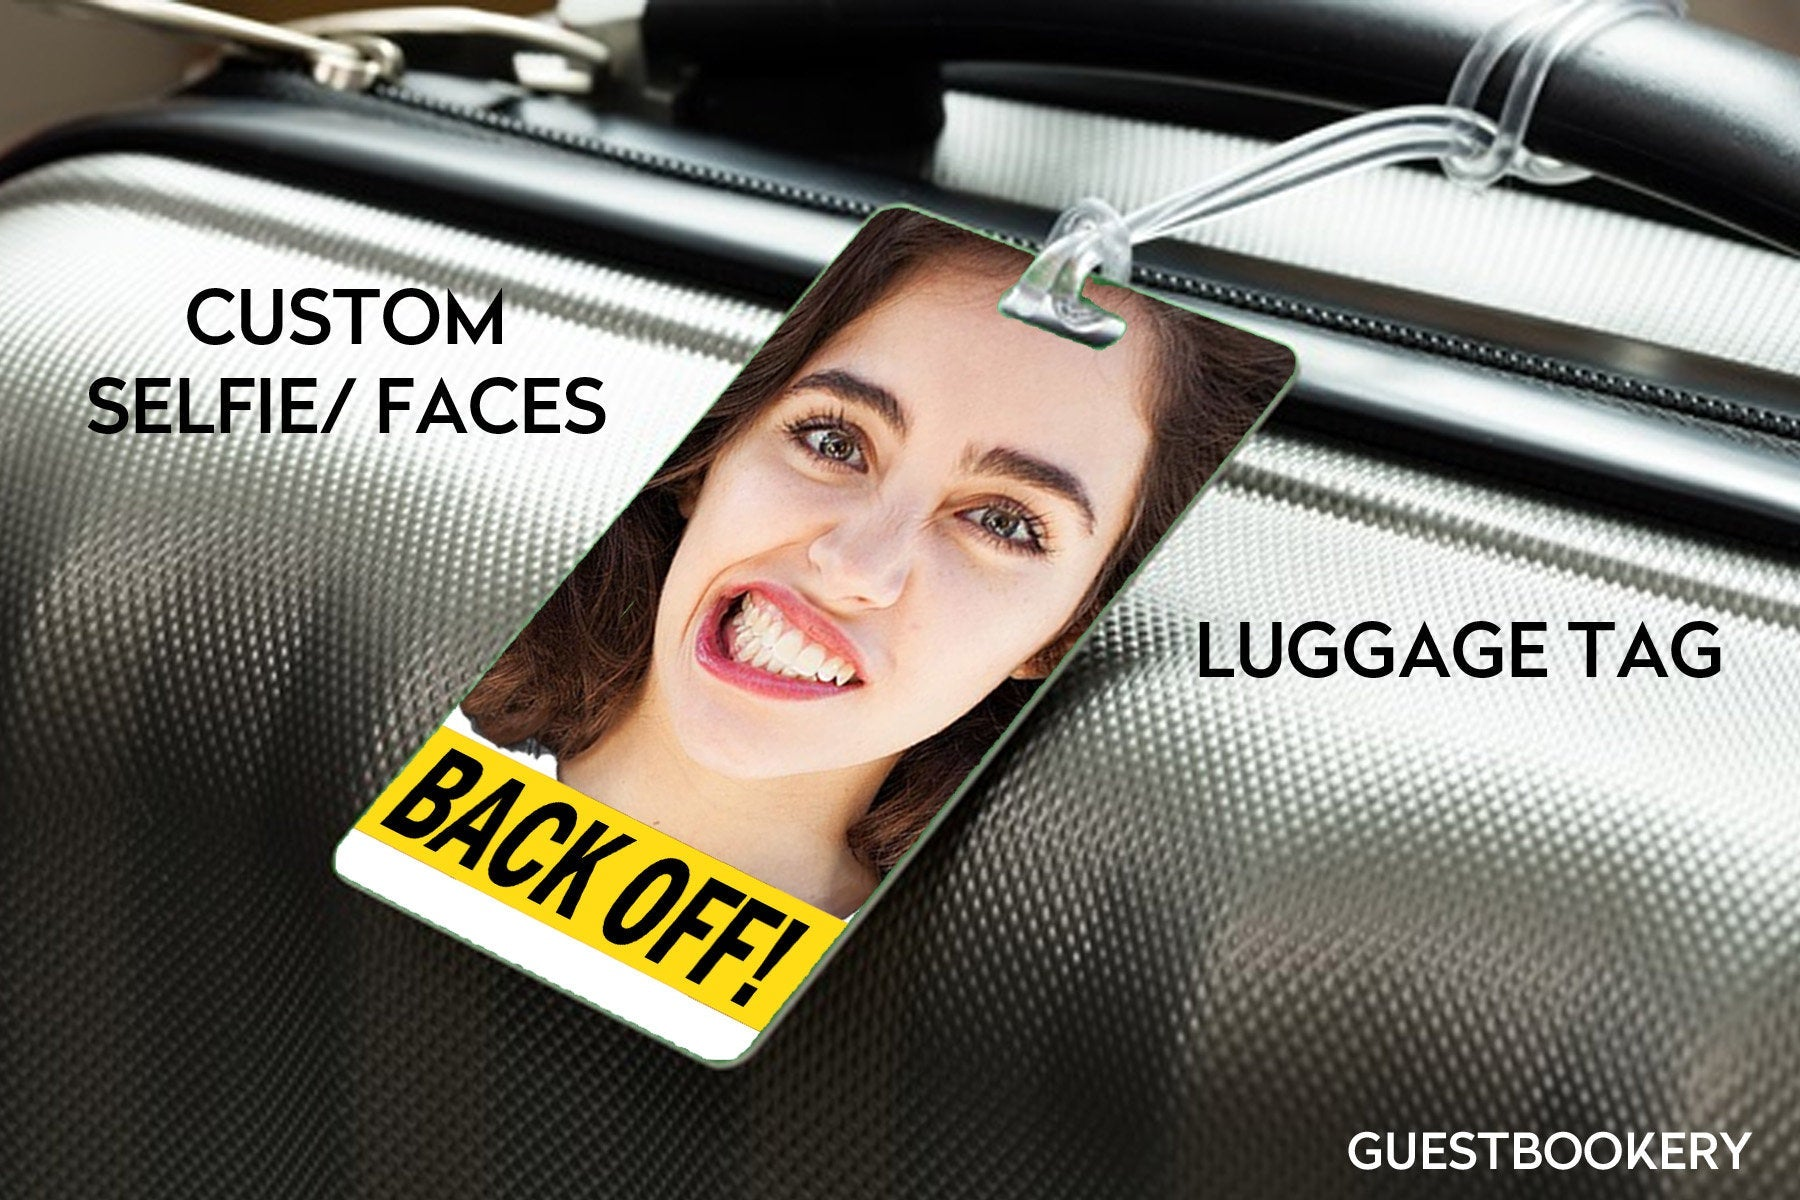 Custom Face Luggage Tag - Back Off - Guestbookery